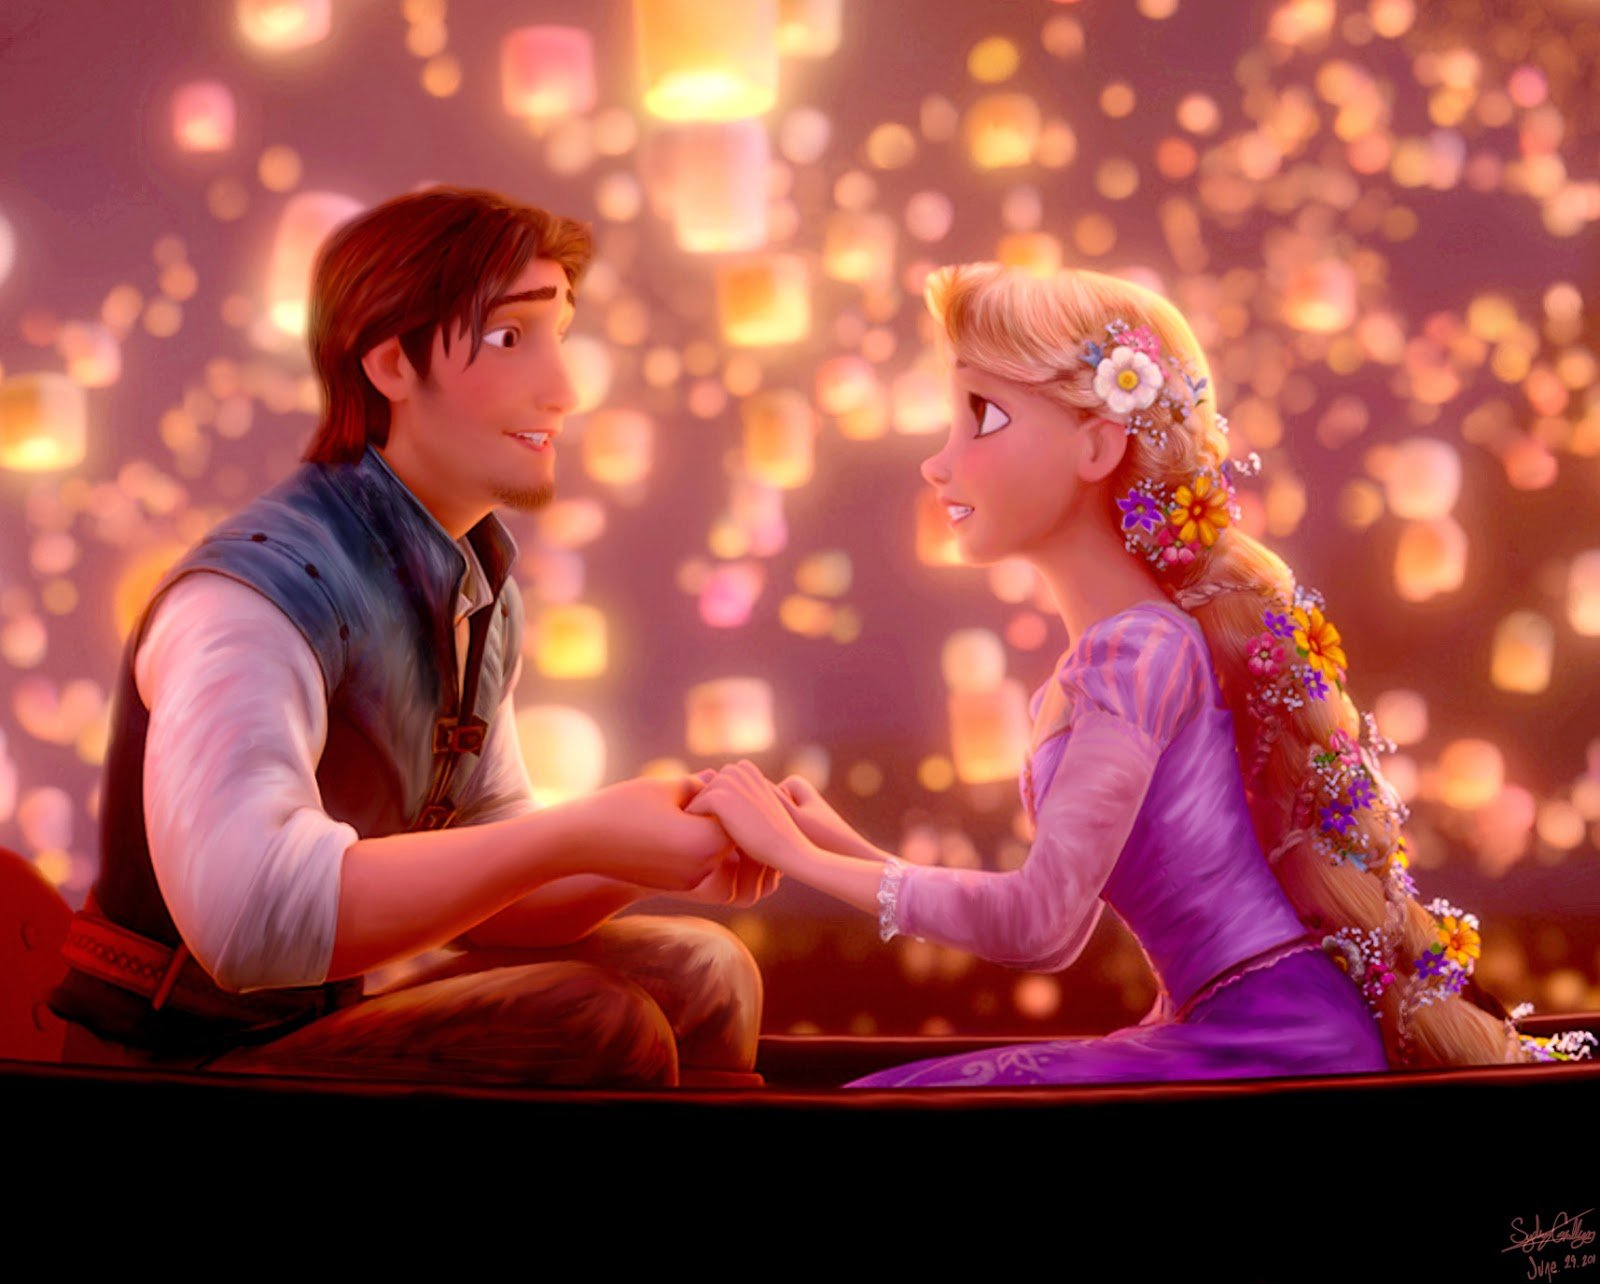 tangled hd wallpaper tangled hd wallpaper tangled hd wallpaper tangled 1600x1284